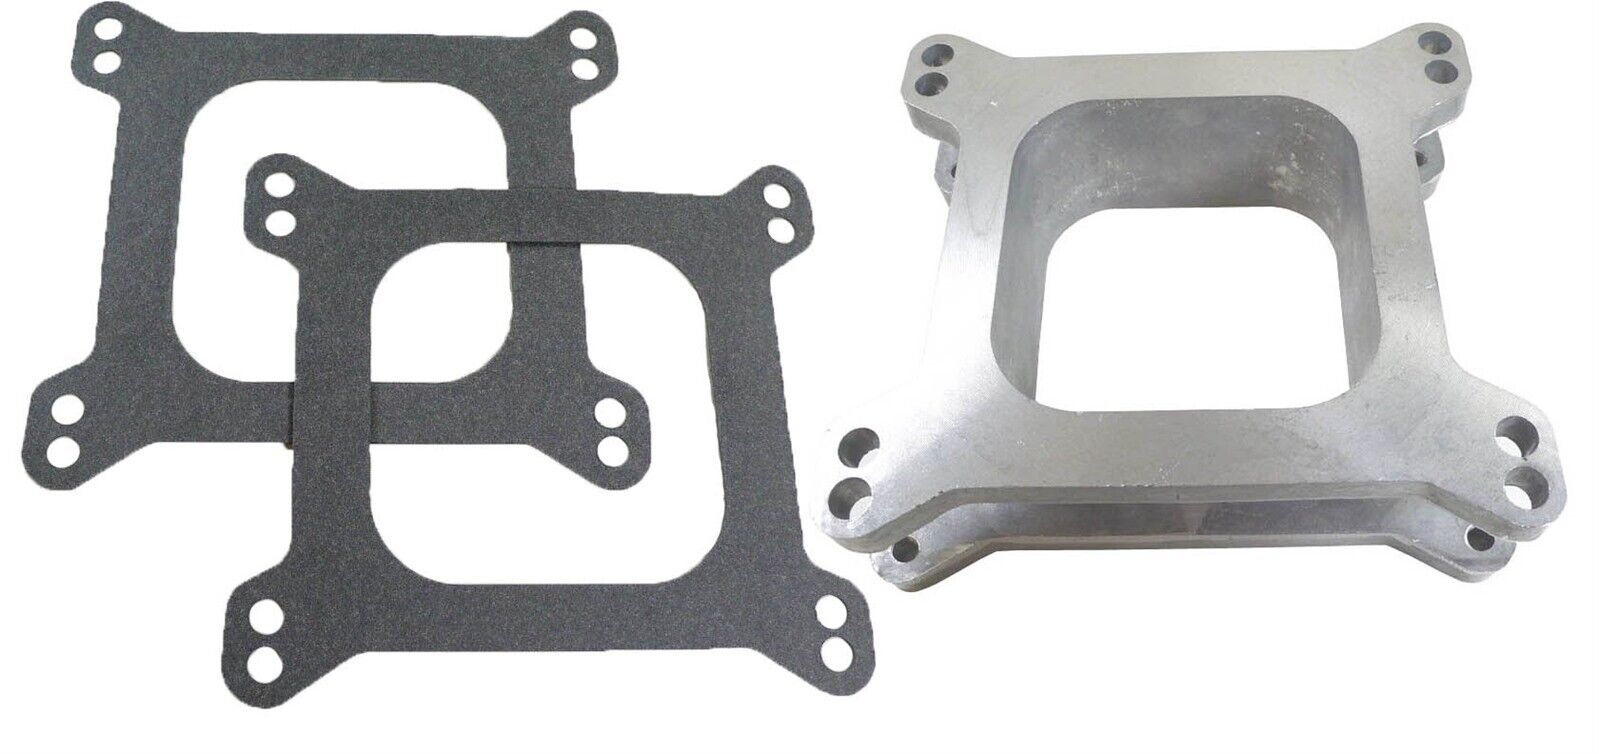 """Holley Edelbrock 2/"""" Tall 4 Hole Phenolic Carb Spacer Chevy Ford Chrysler V8 4BBL"""